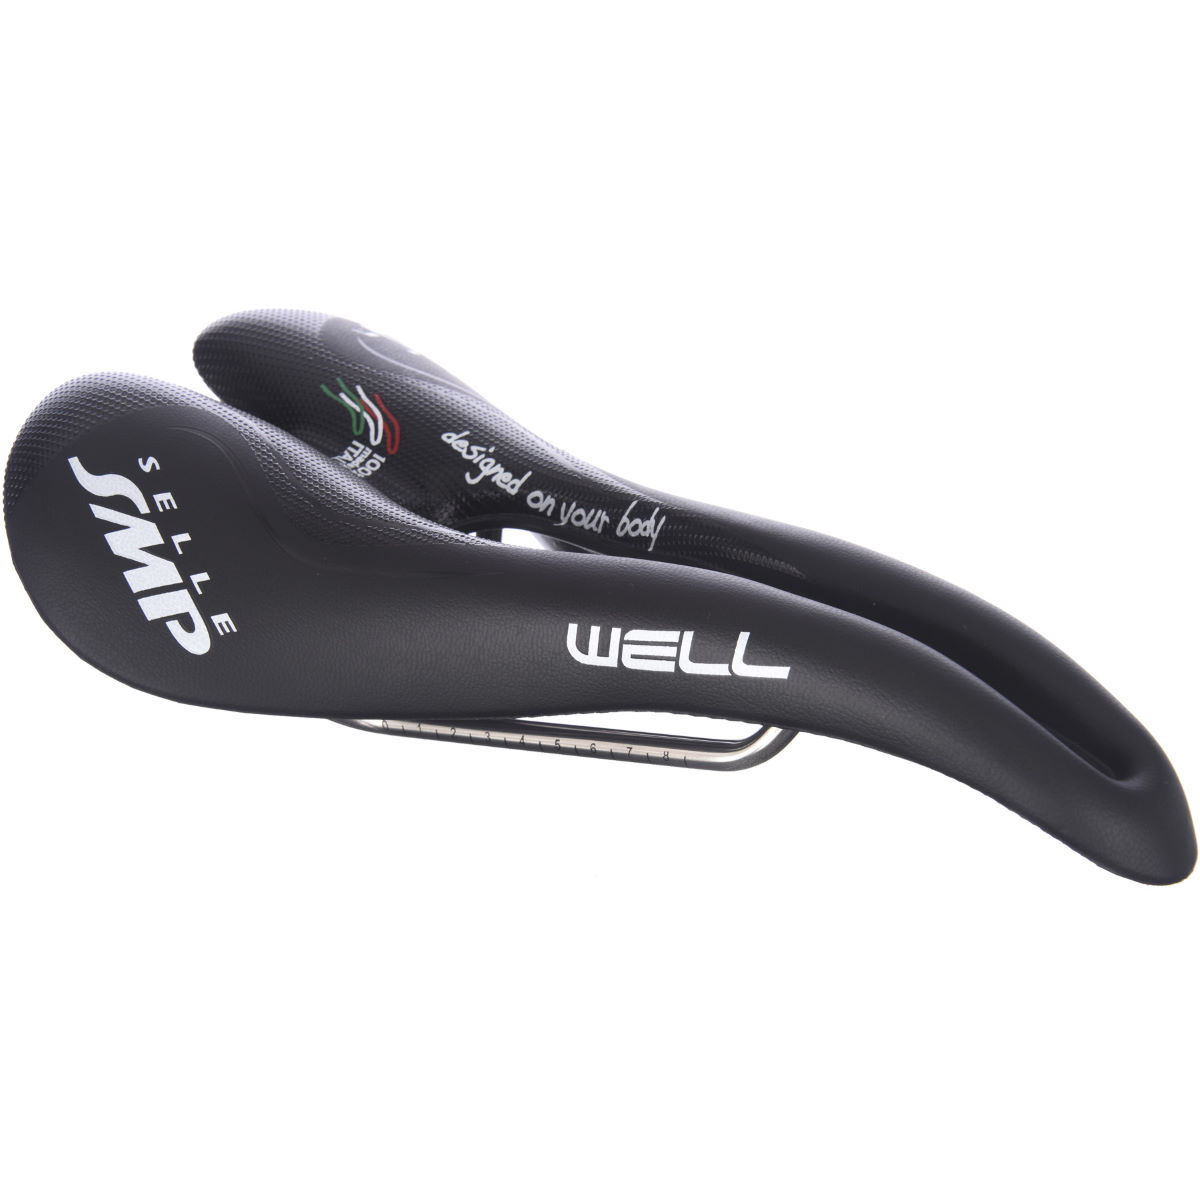 Selle SMP Selle SMP Well Saddle   Saddles